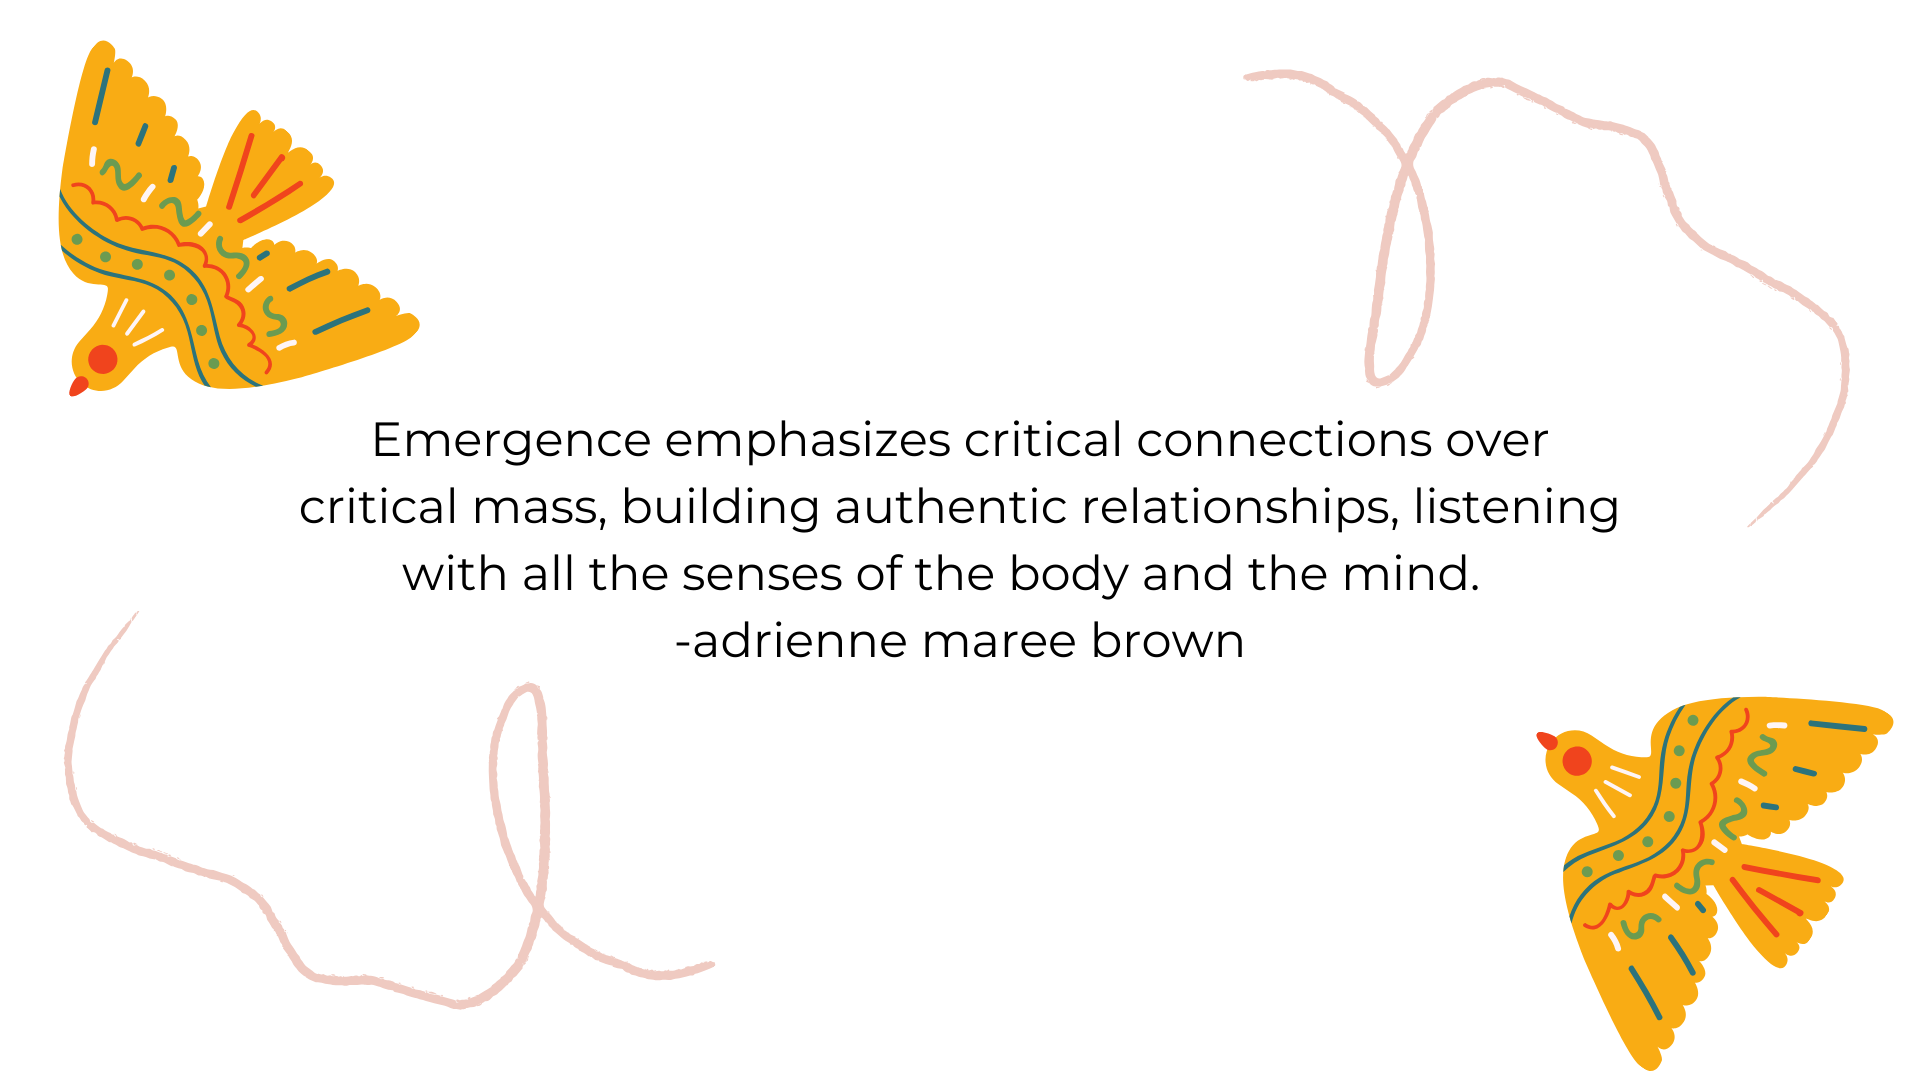 Emergence emphasizes critical connections over critical mass, building authentic relationships, listening with all the senses of the body and the mind.    -adrienne maree brown